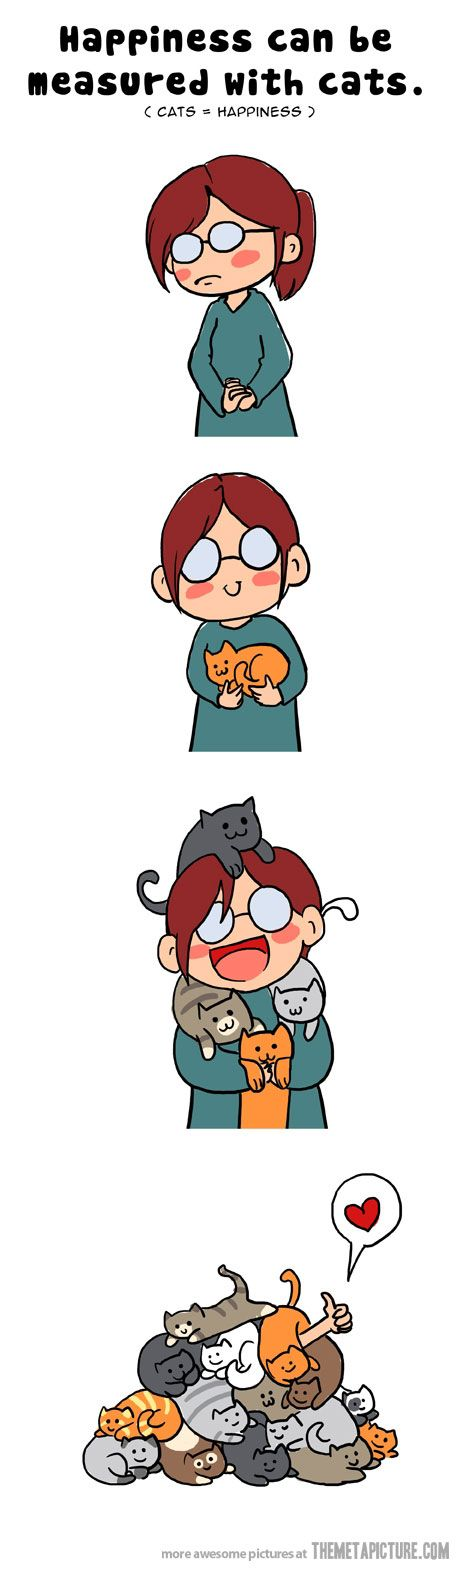 cats=hapiness This explains me completely